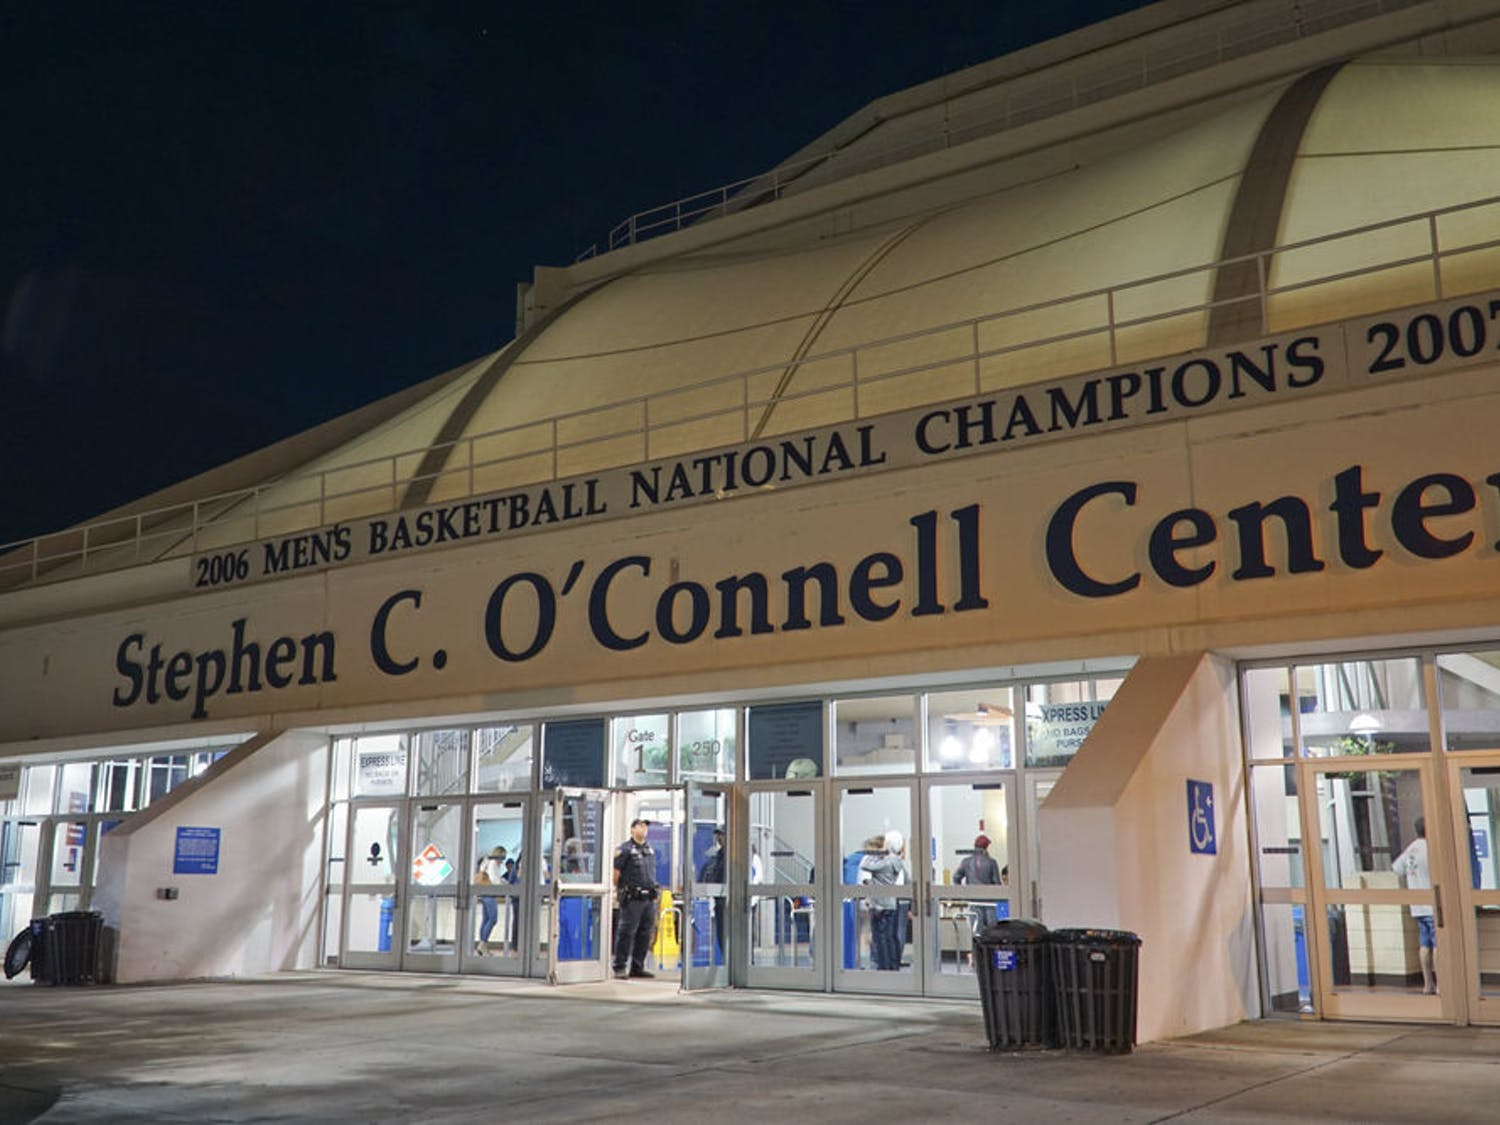 The Stephen C. O'Connell Center on Dec. 3, 2016.